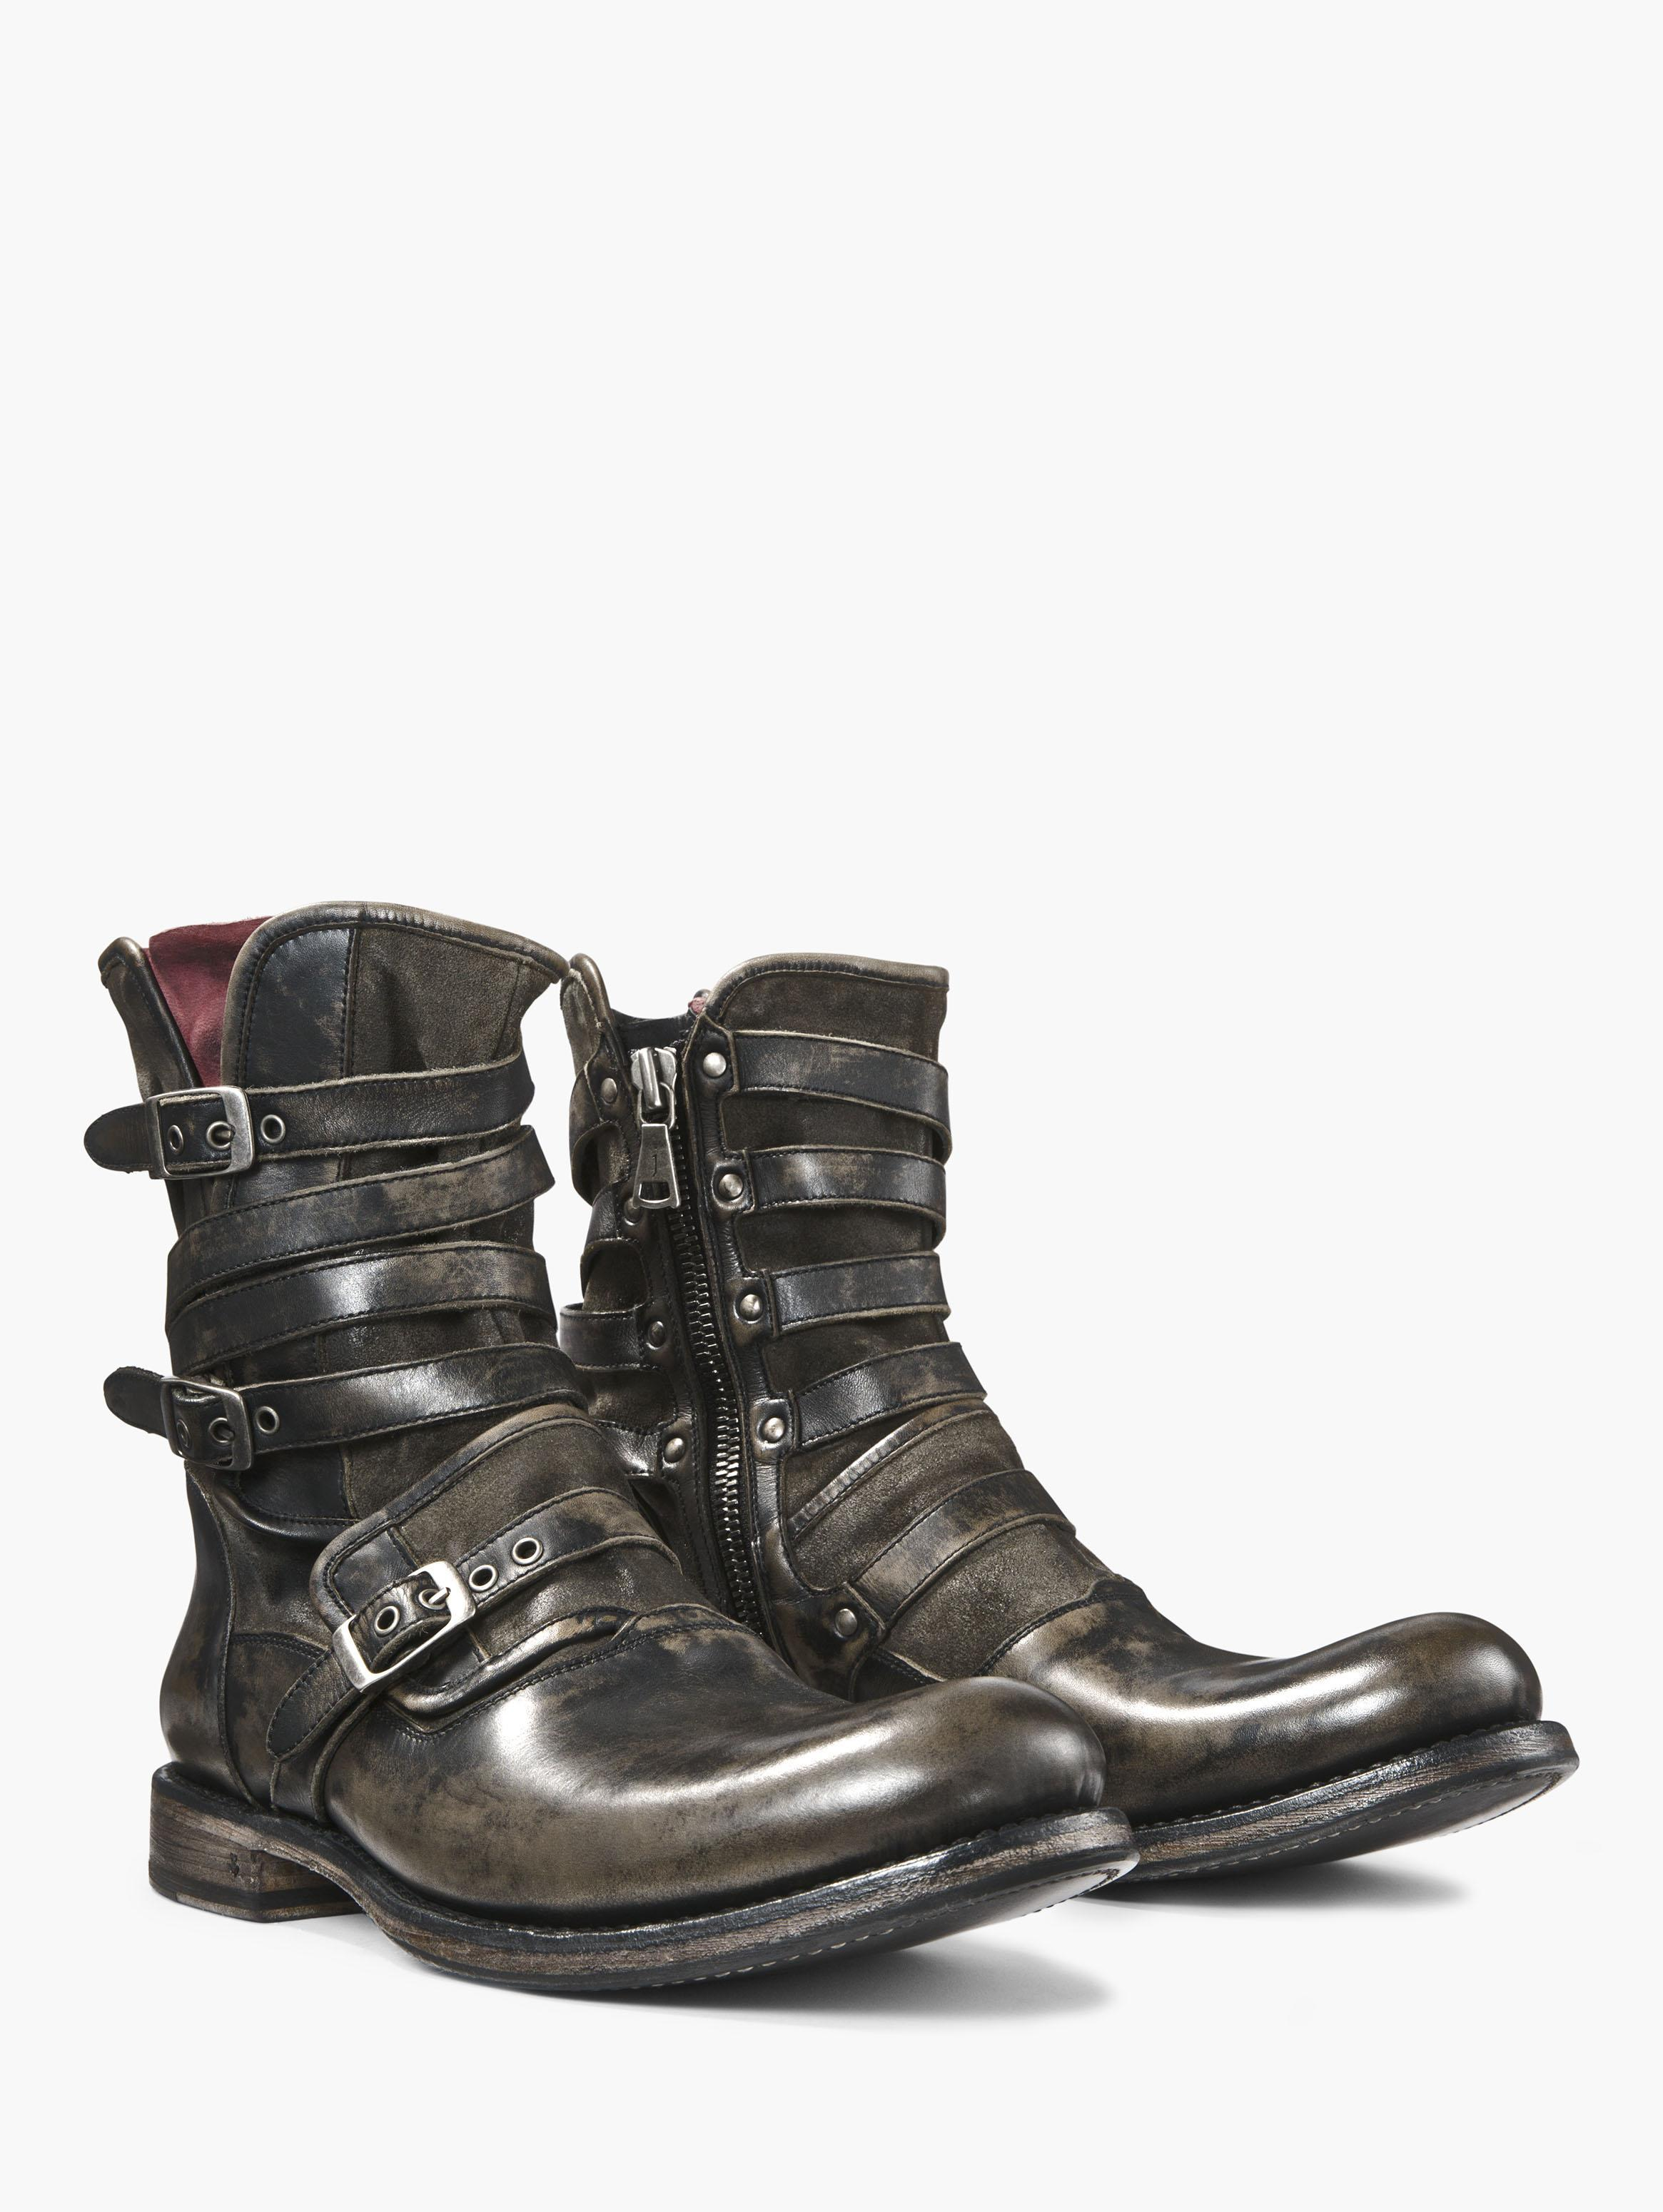 John Varvatos Engineer Triple Buckle Boots In Gray For Men